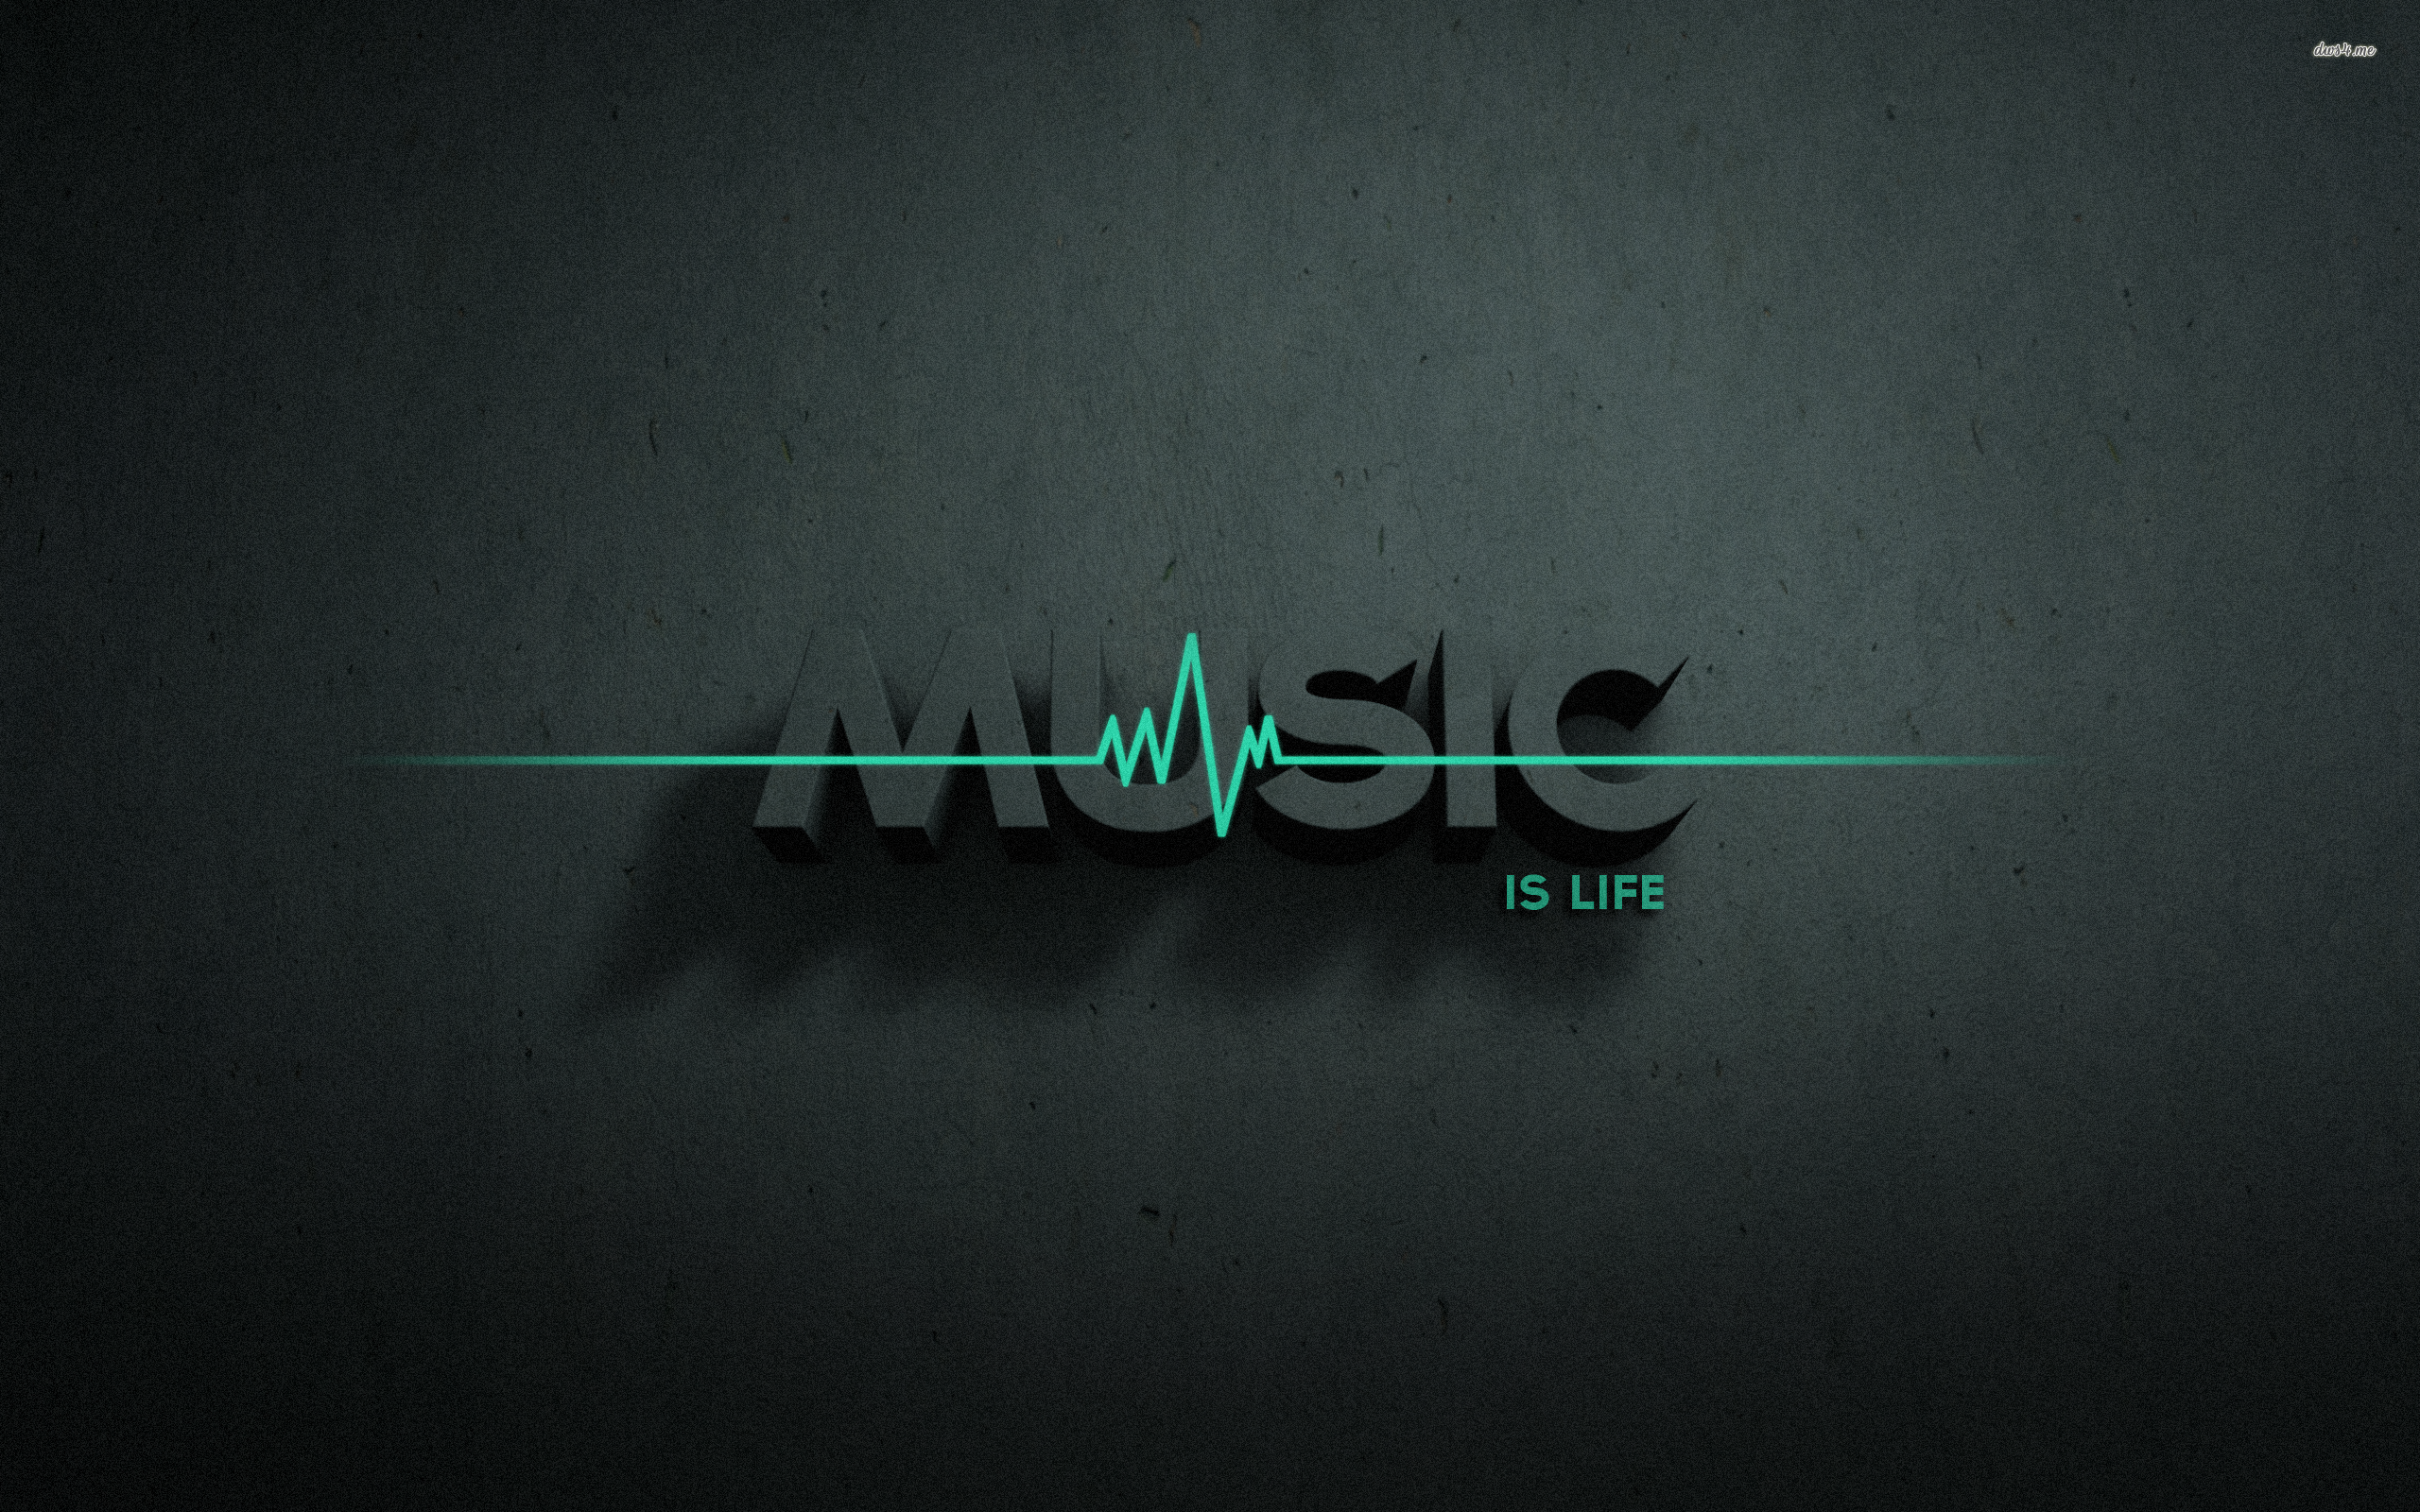 Hd wallpaper music - Music Wallpaper Pictures Background Fullwidehd Com